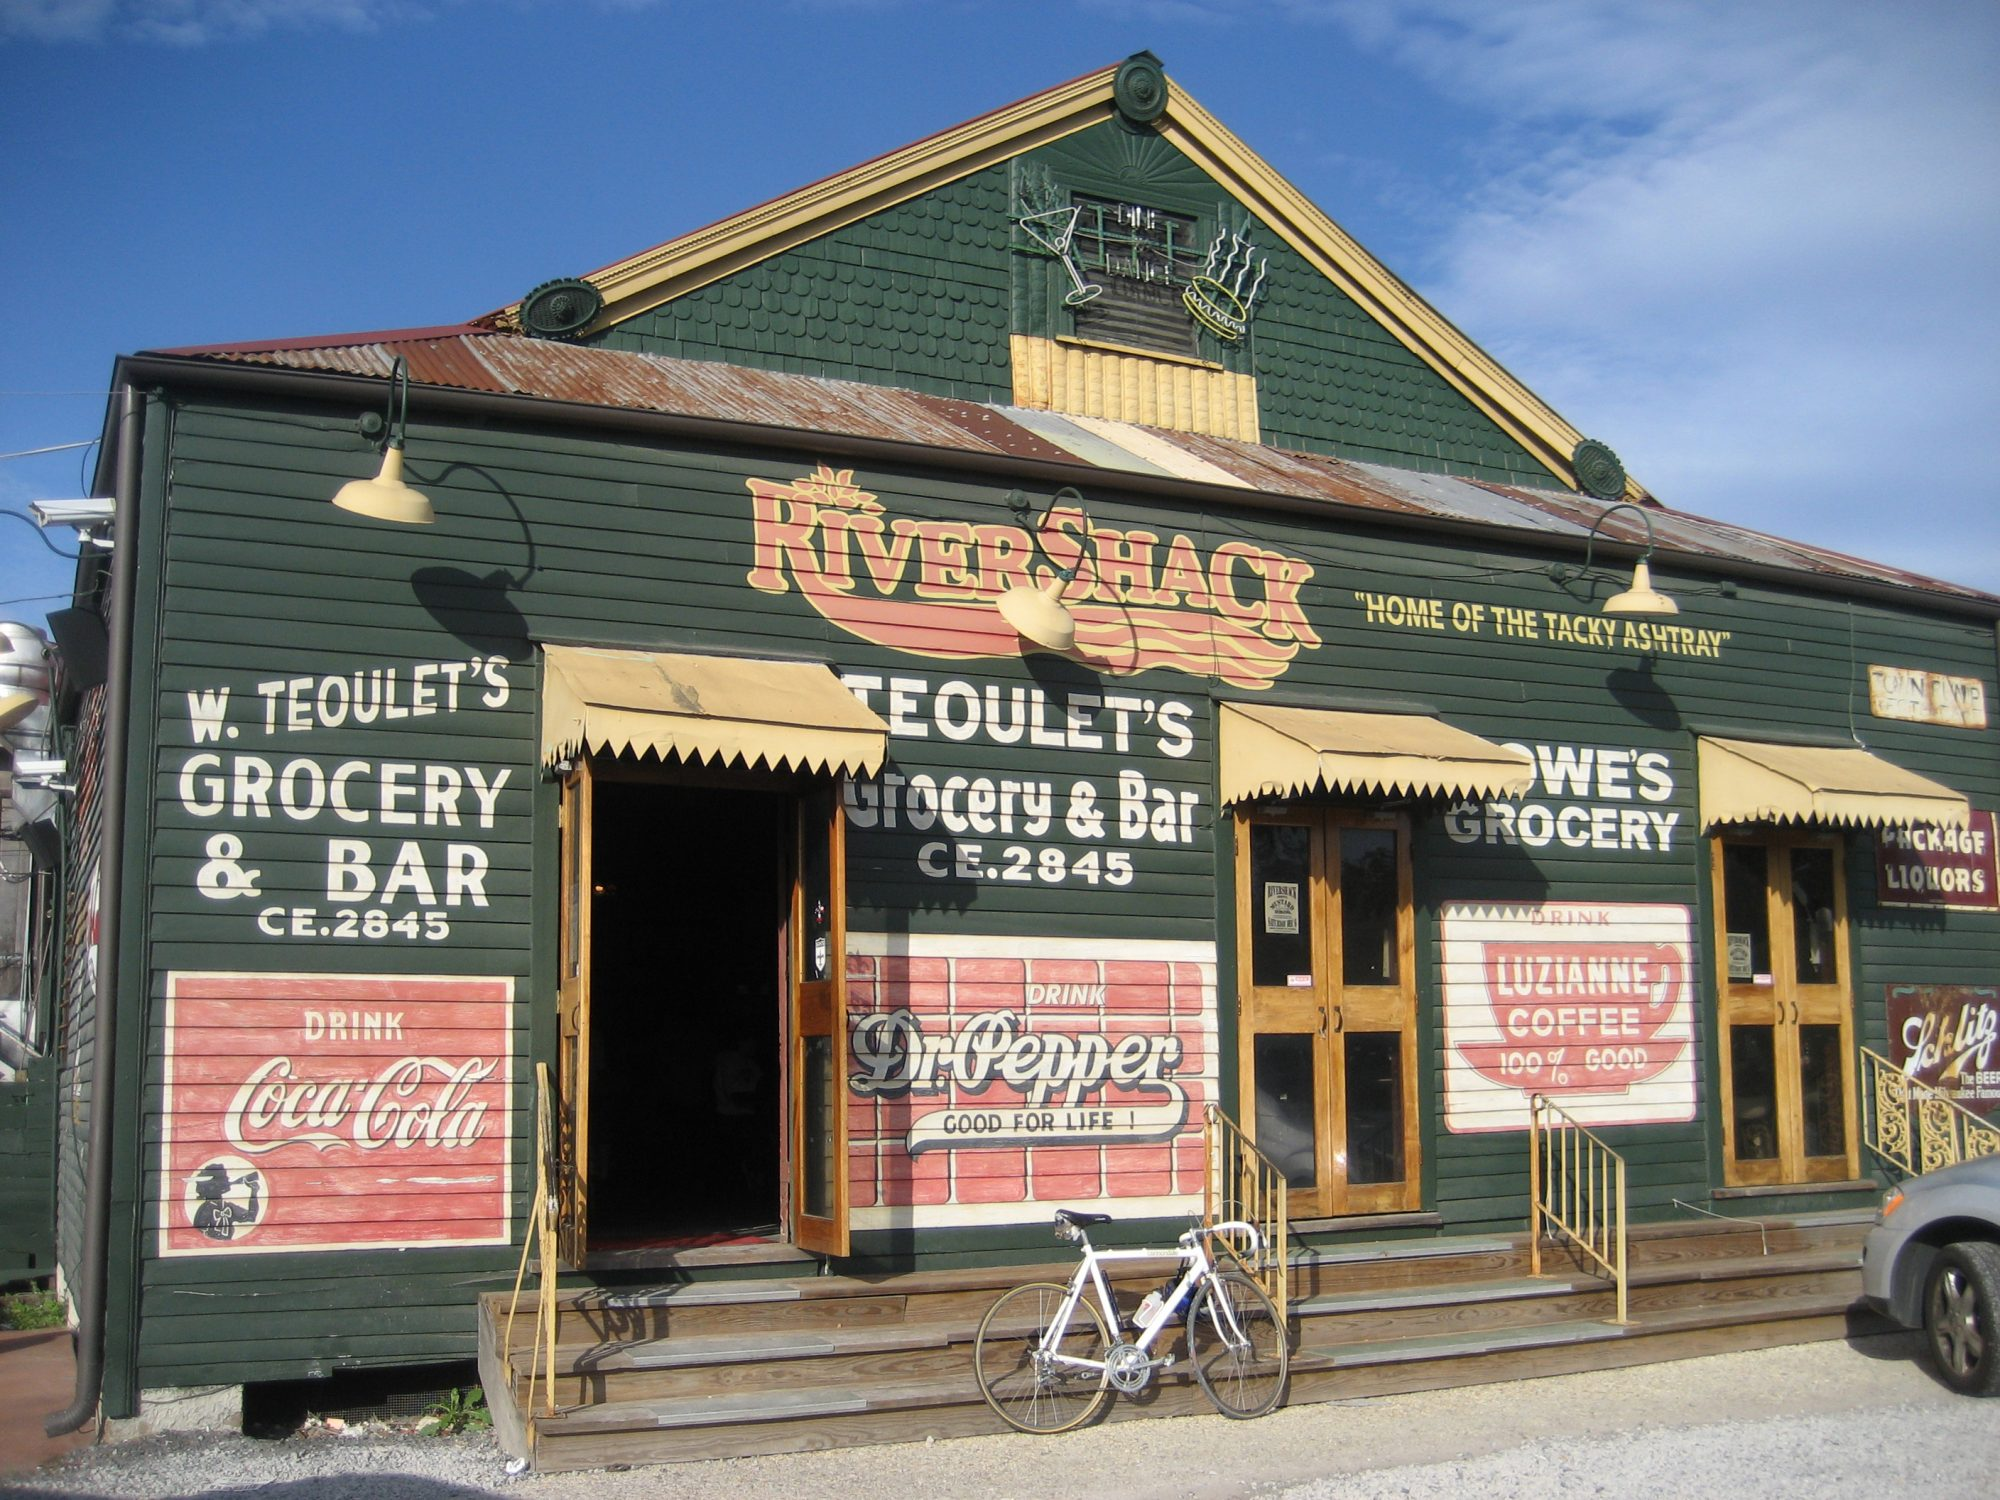 27. Rivershack Tavern